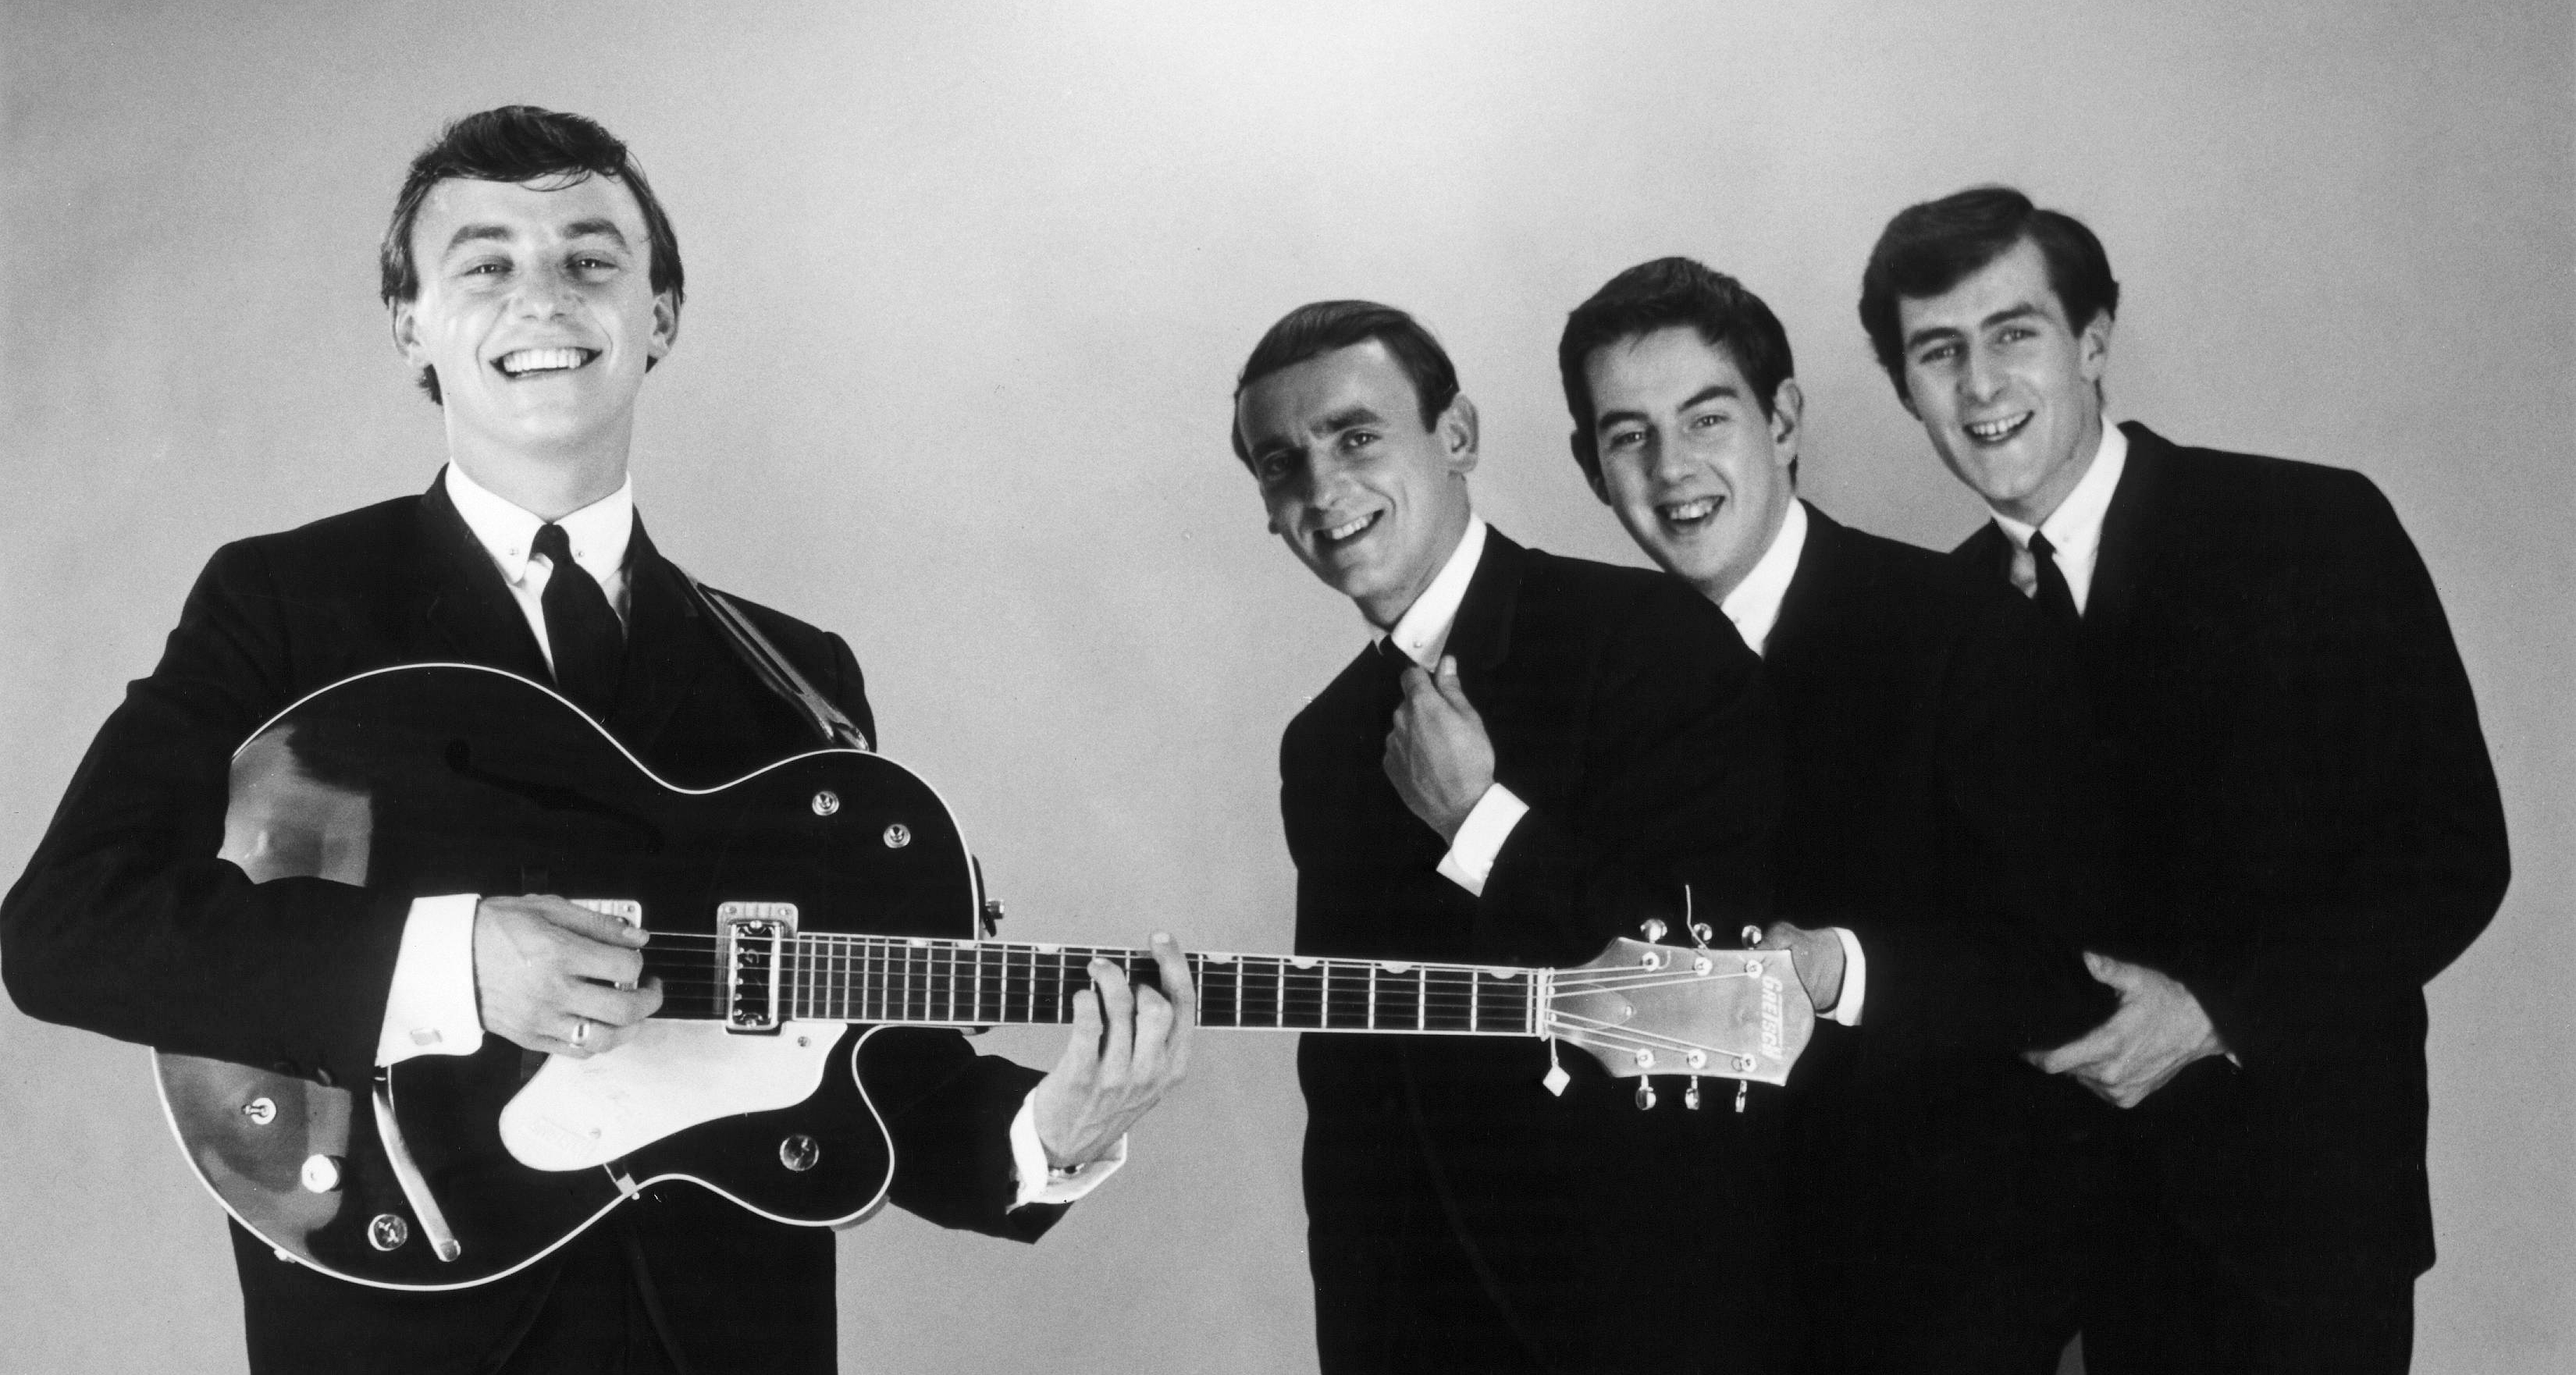 Gerry Marsden, singer for Gerry and the Pacemakers, dies at 78